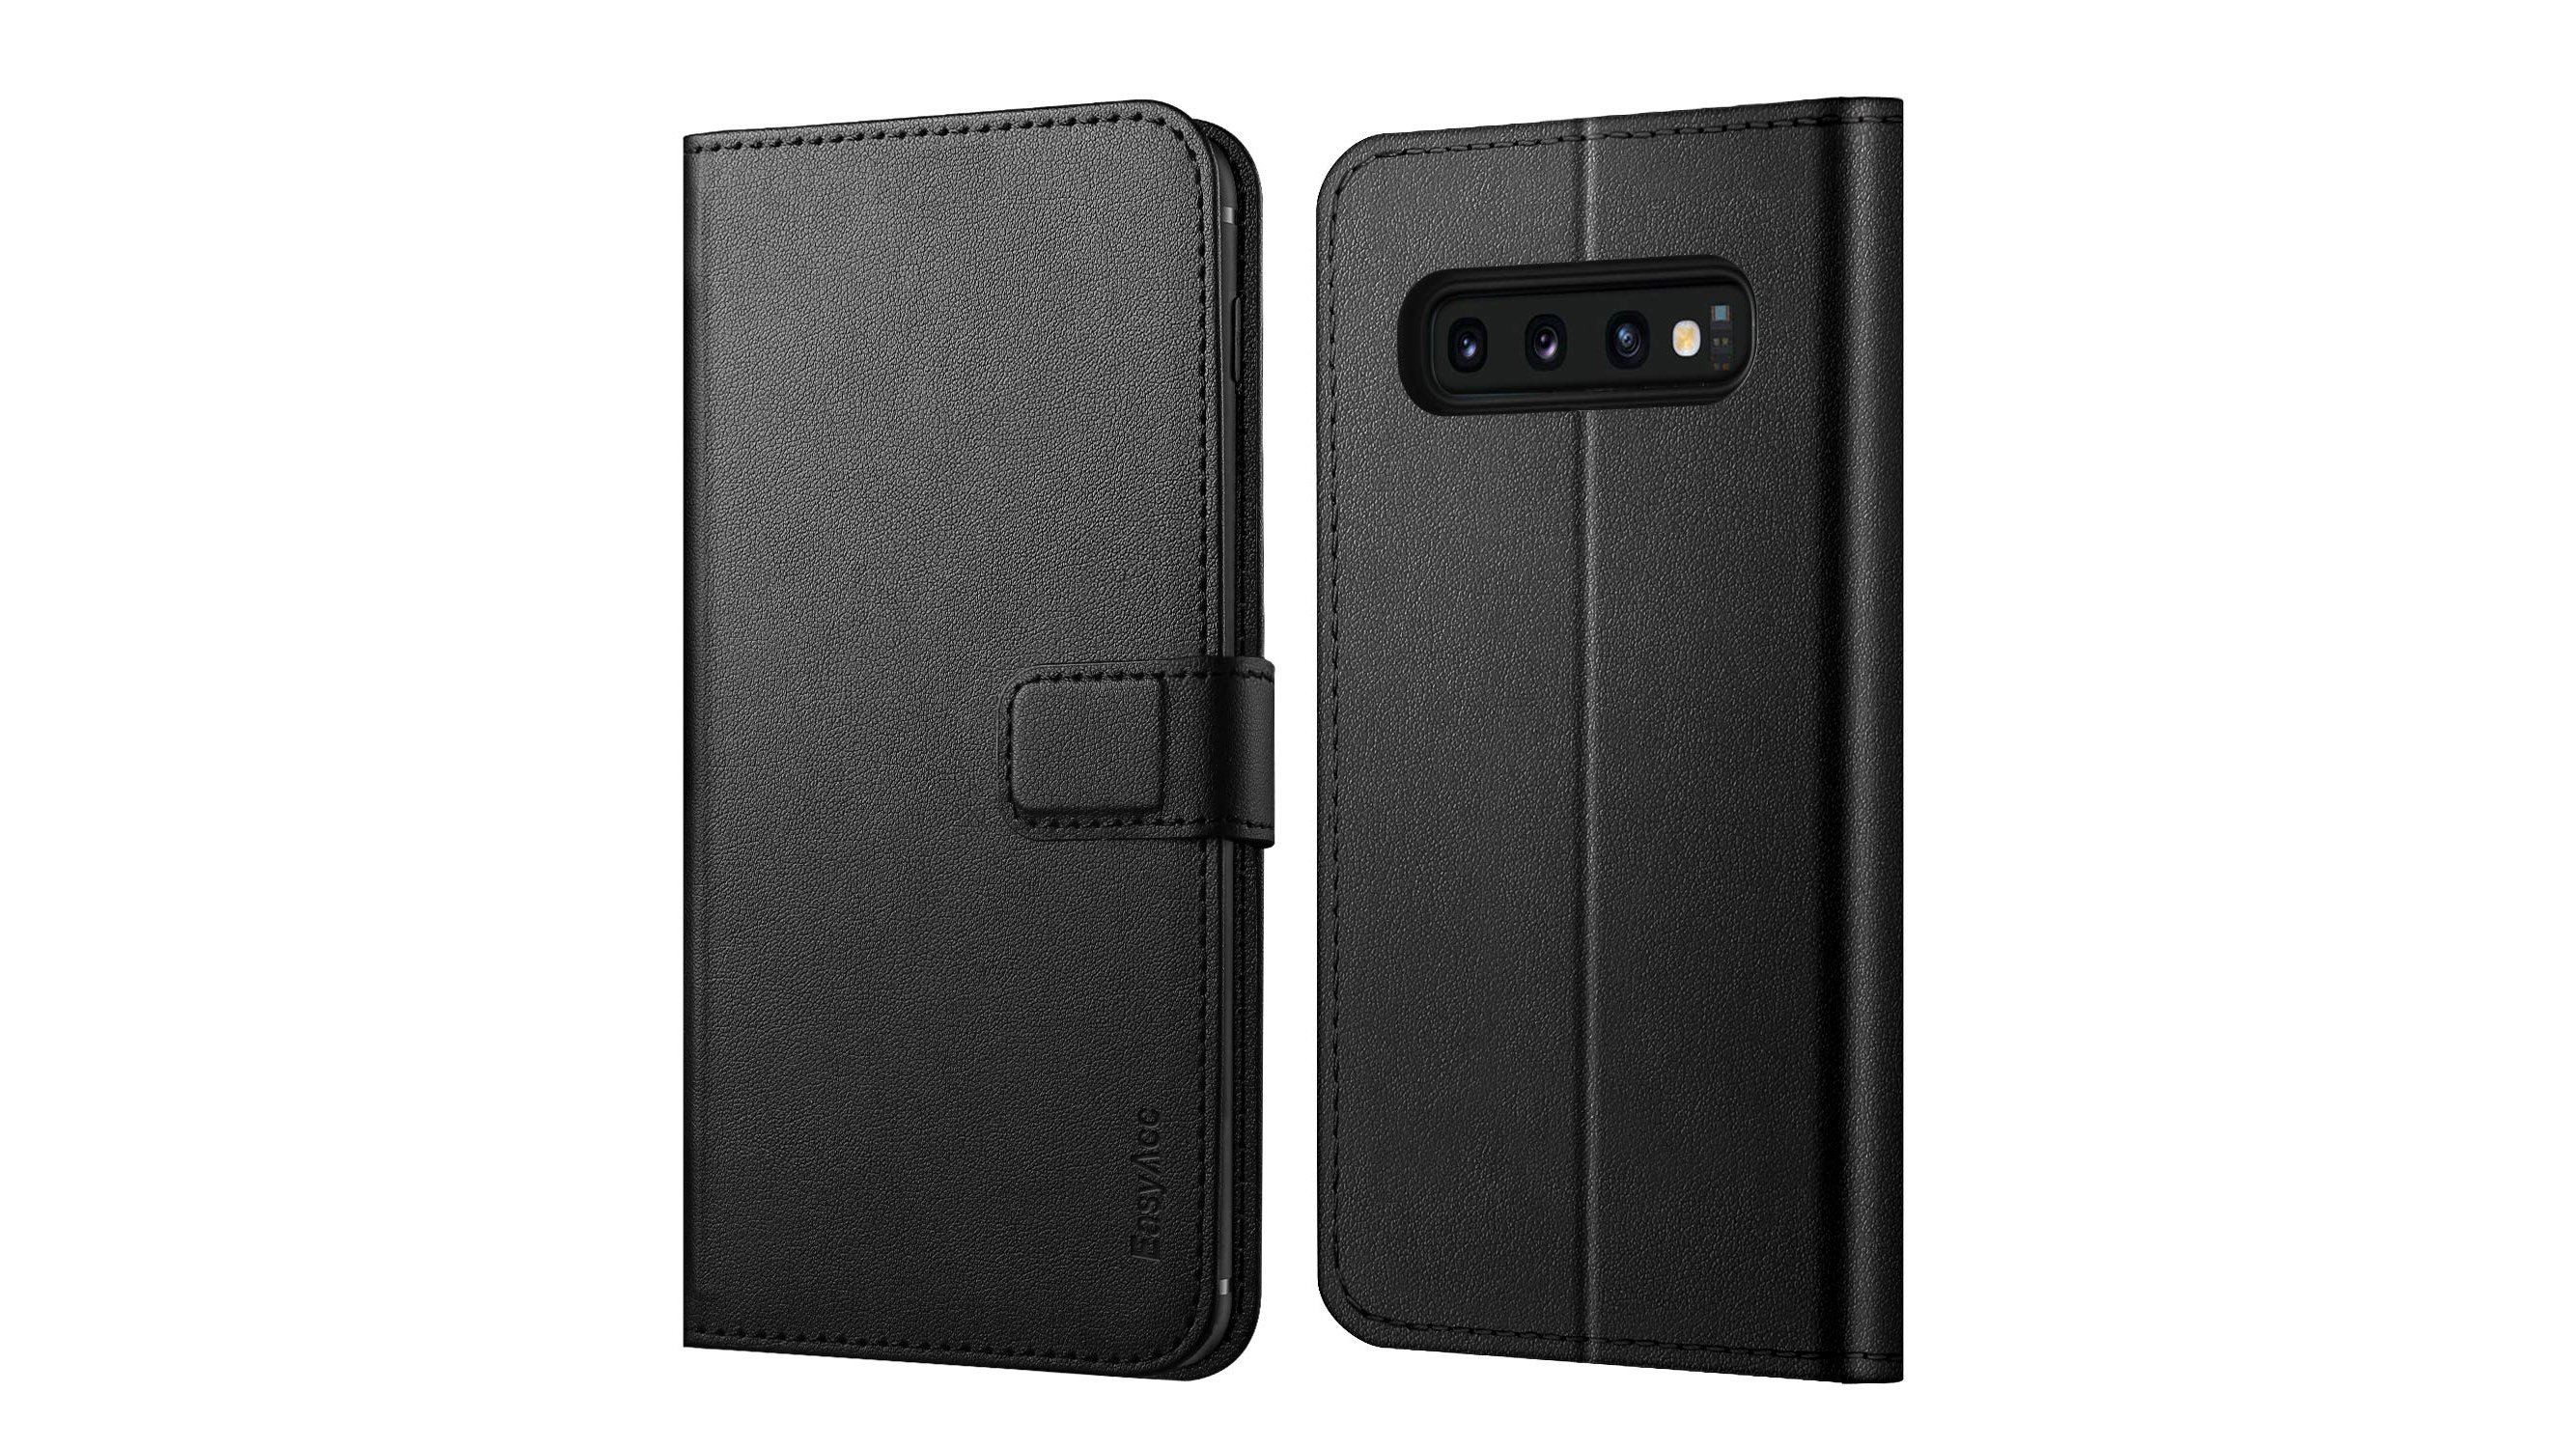 best website 8904c 57c30 Best Samsung Galaxy S10 cases: Ideal cases from £7 to £60 | Expert ...